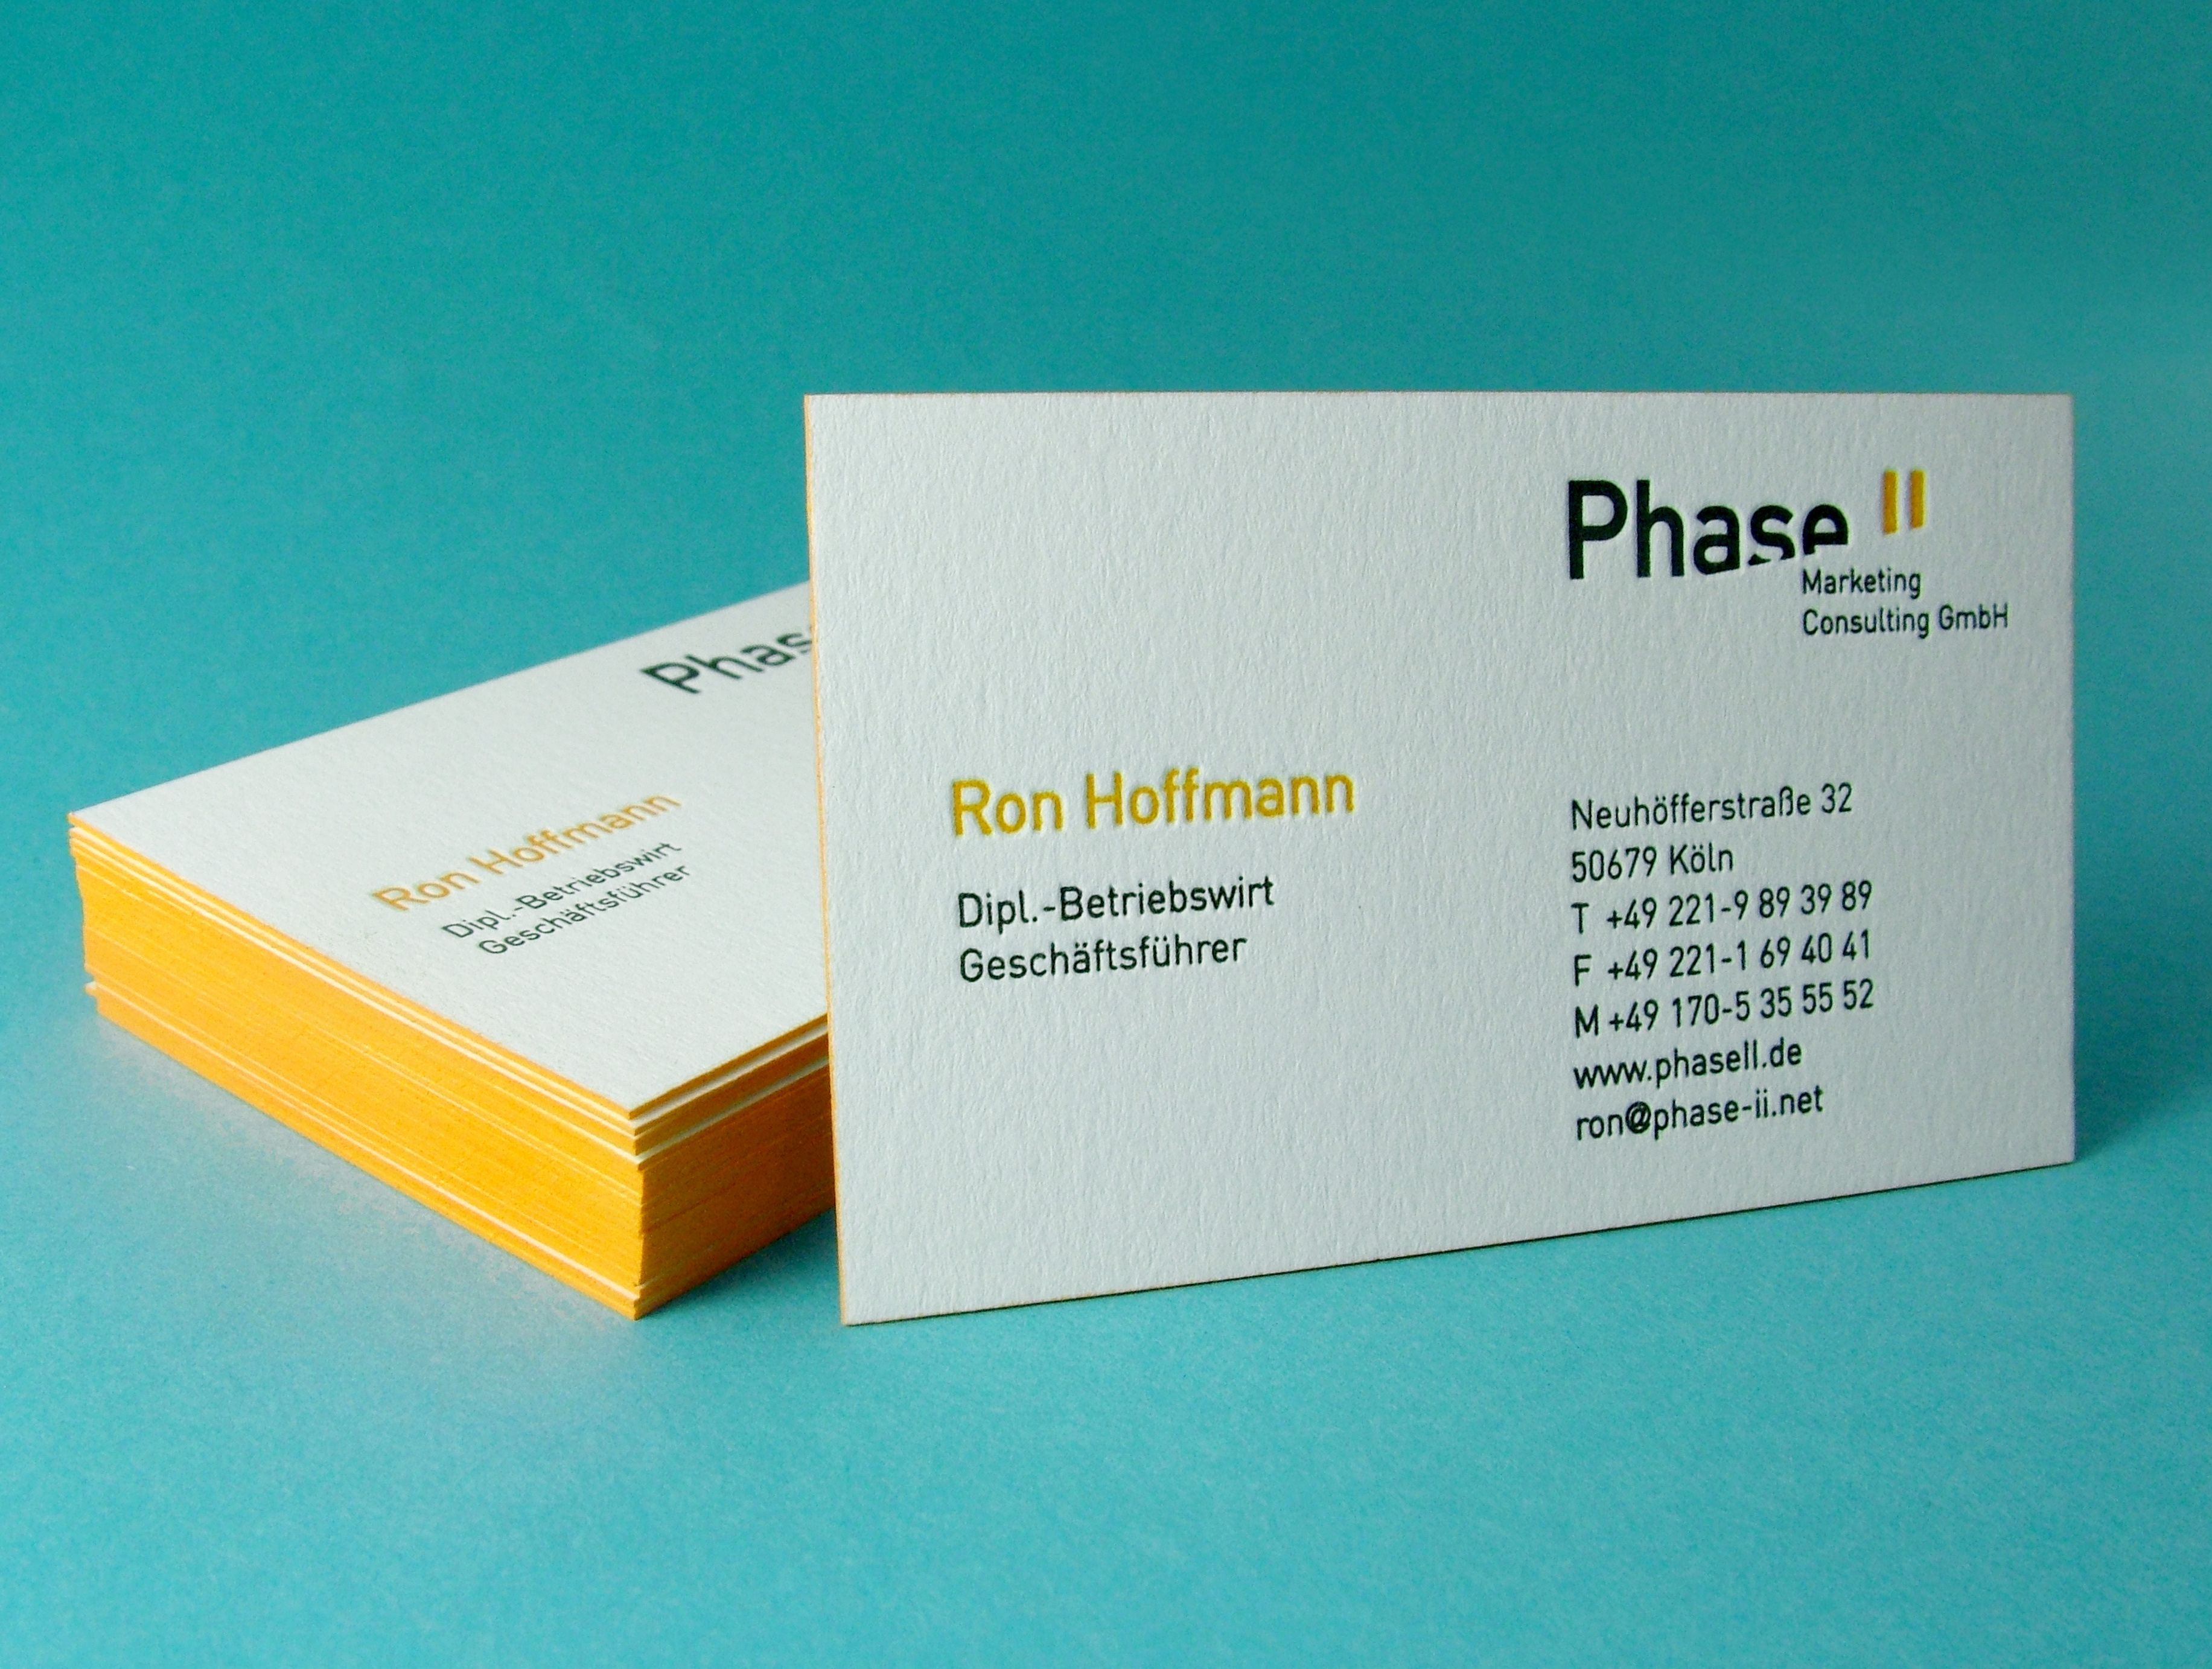 2 colour letterpress business cards printed on metapaper s